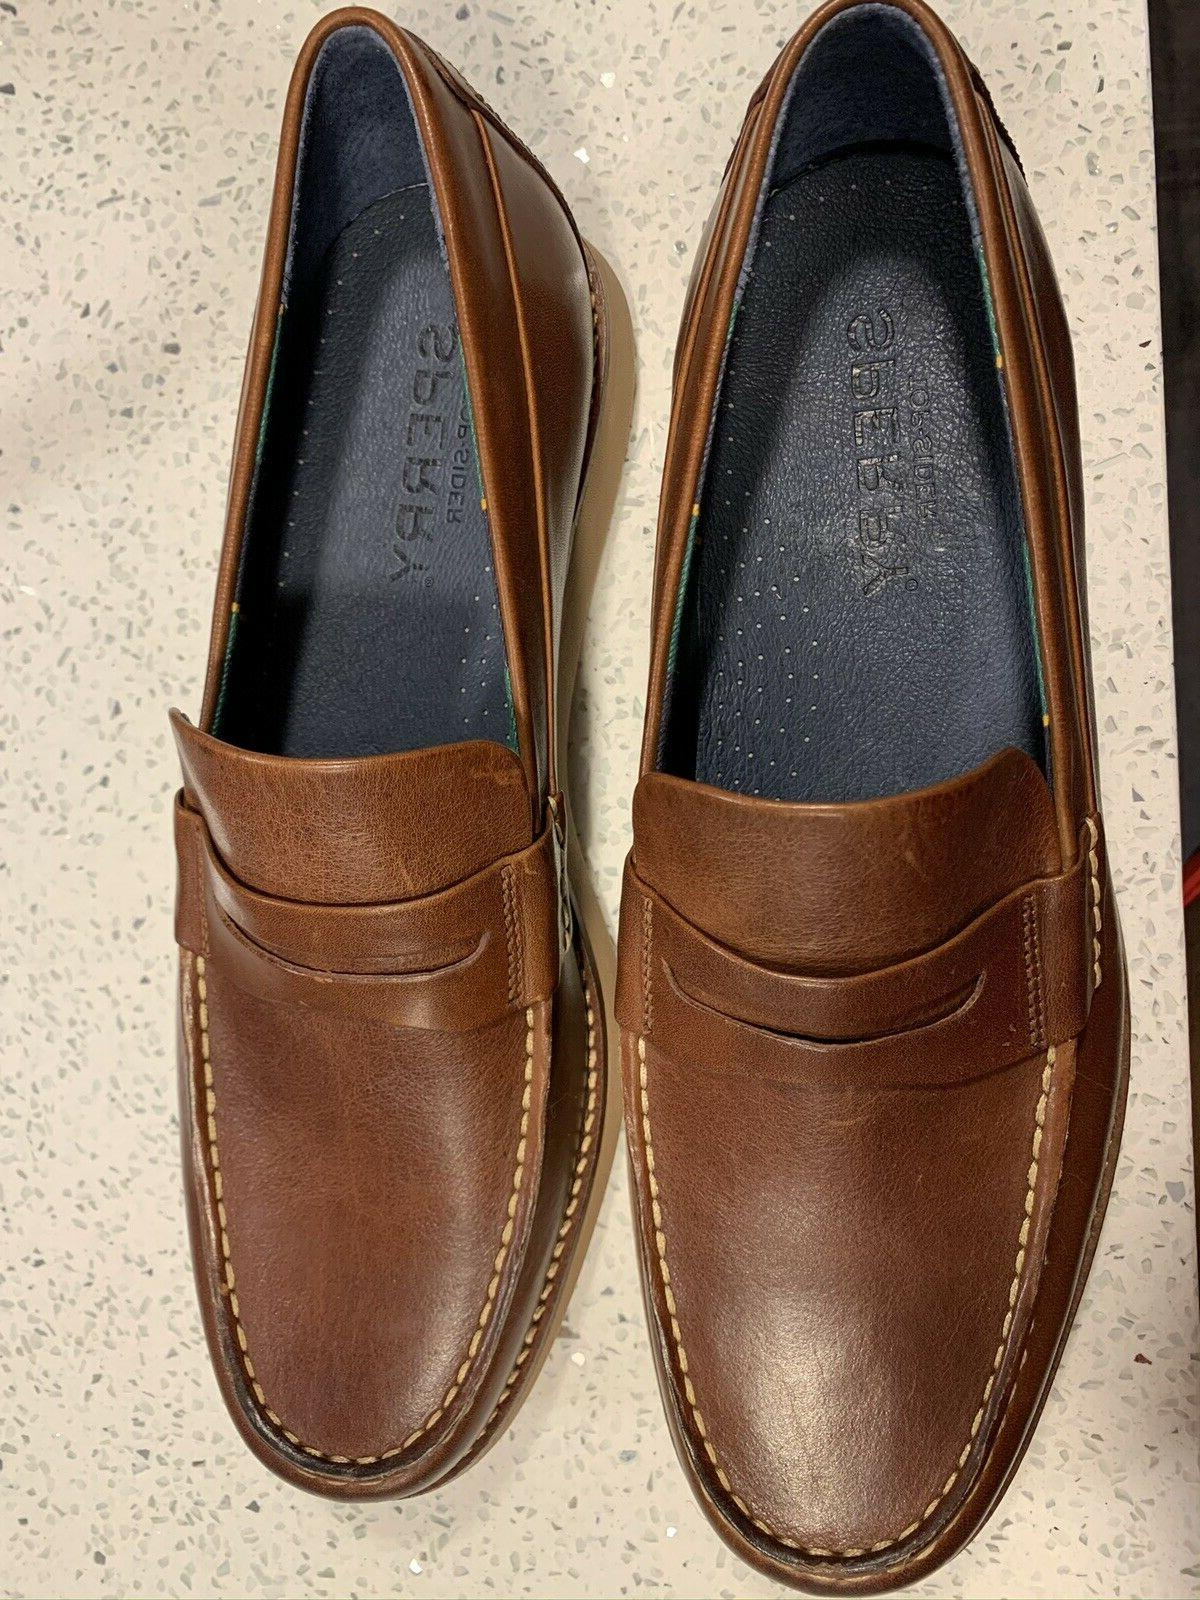 Sider Brown Kennedy Varsity Penny Loafers Sz